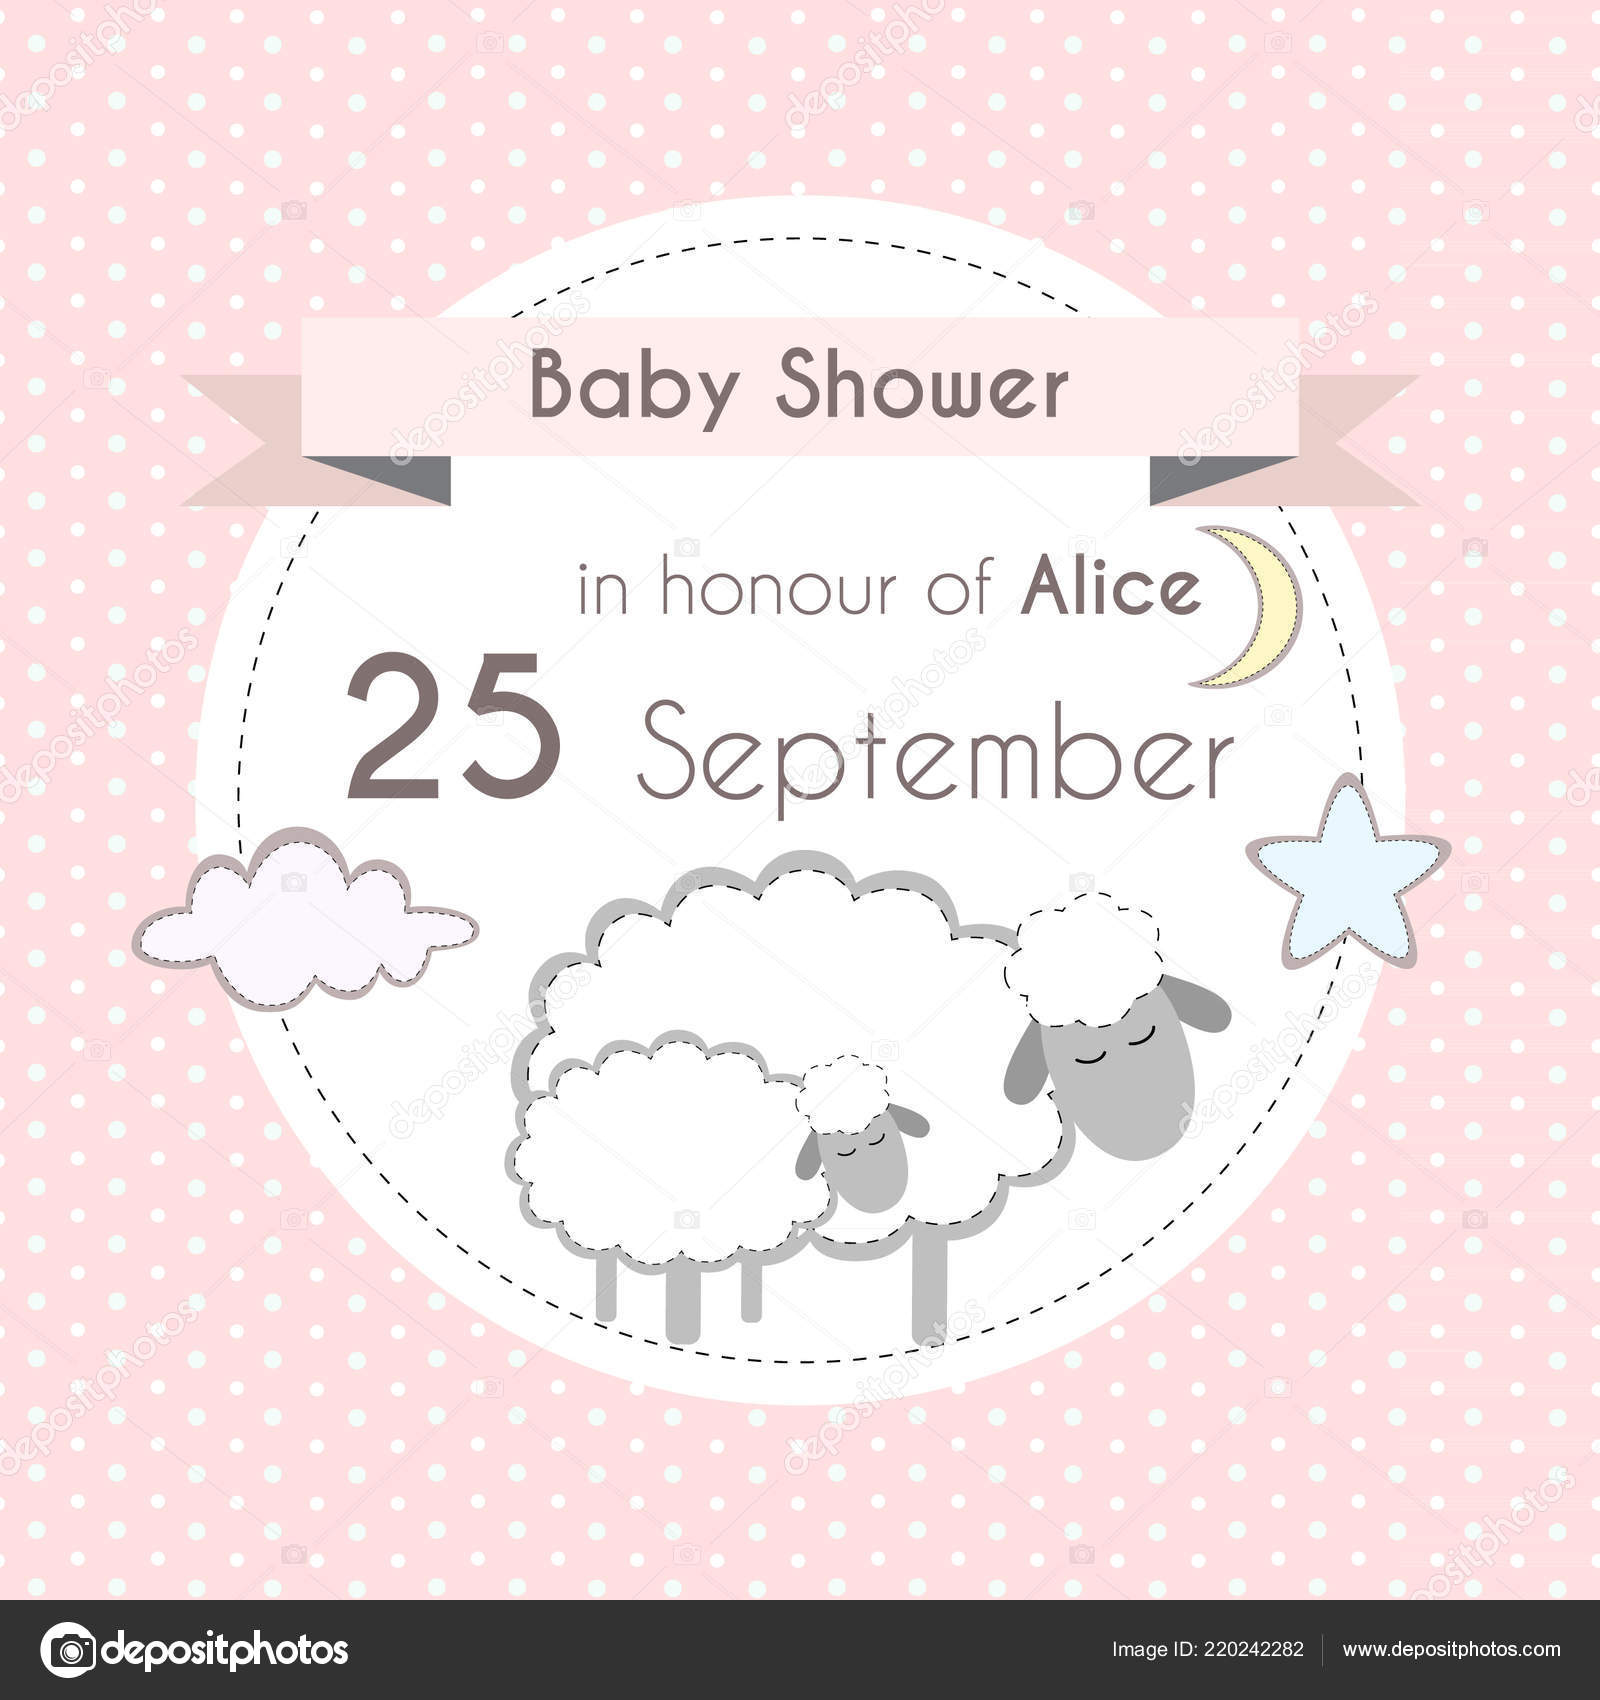 Baby Shower Girl Invitation Card Template Scrapbooking